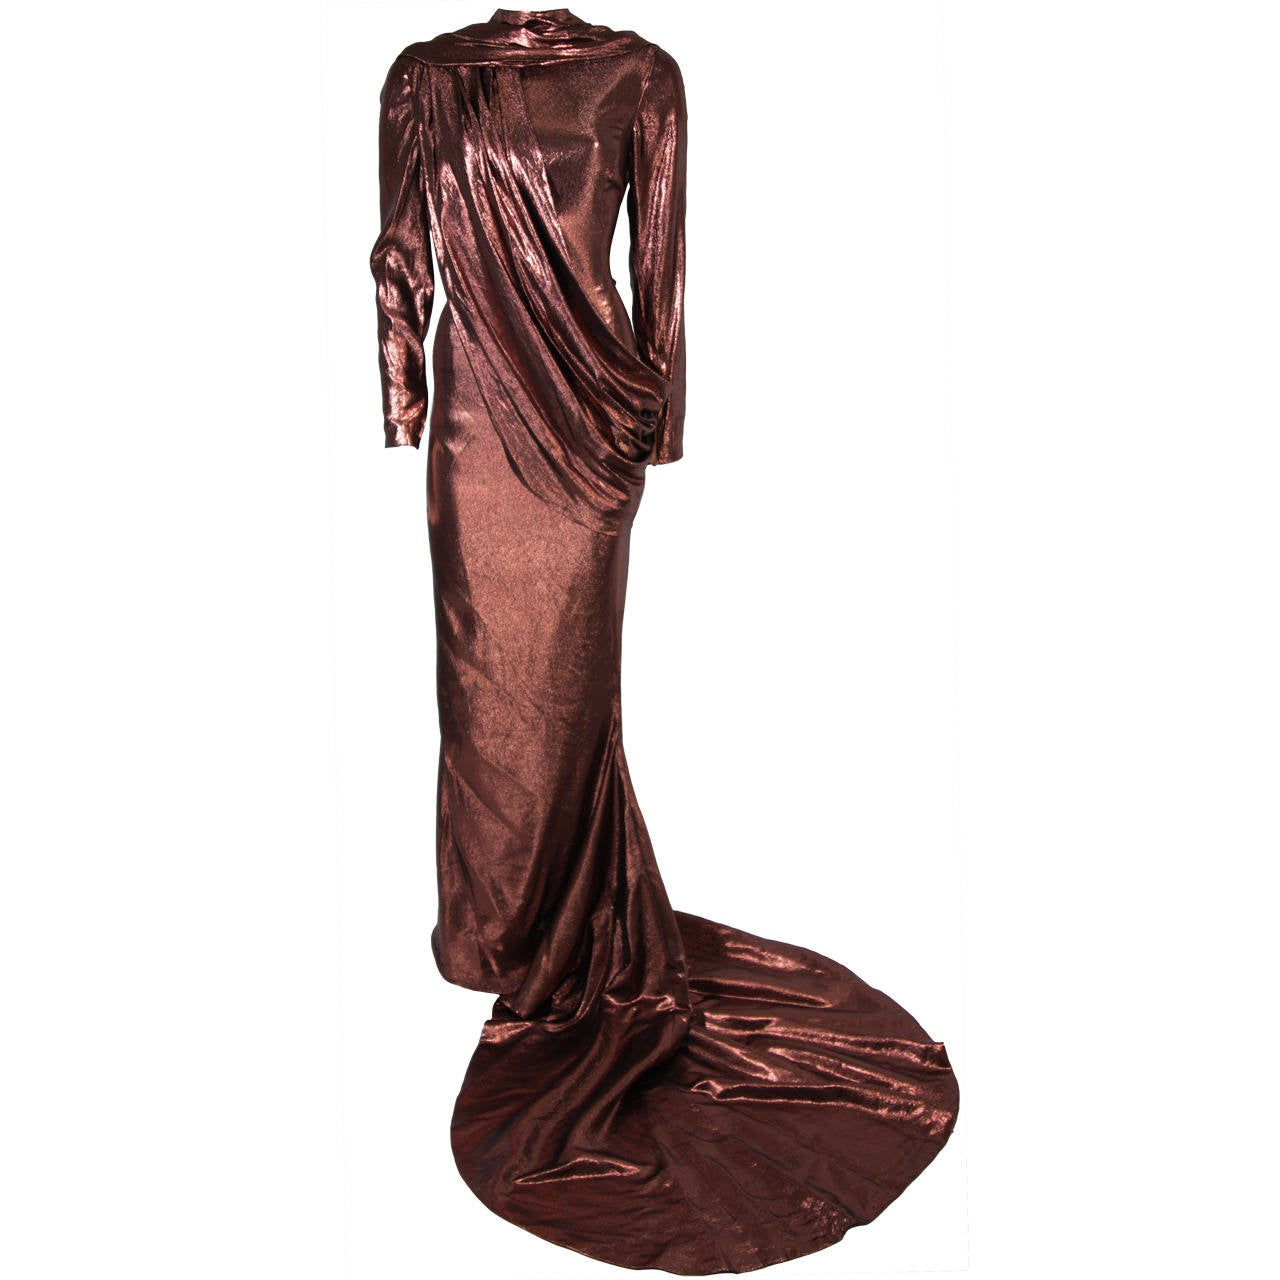 Pierre Balmain Runway Couture Copper Metallic Silk Gown Size Small Circa 1980's 1